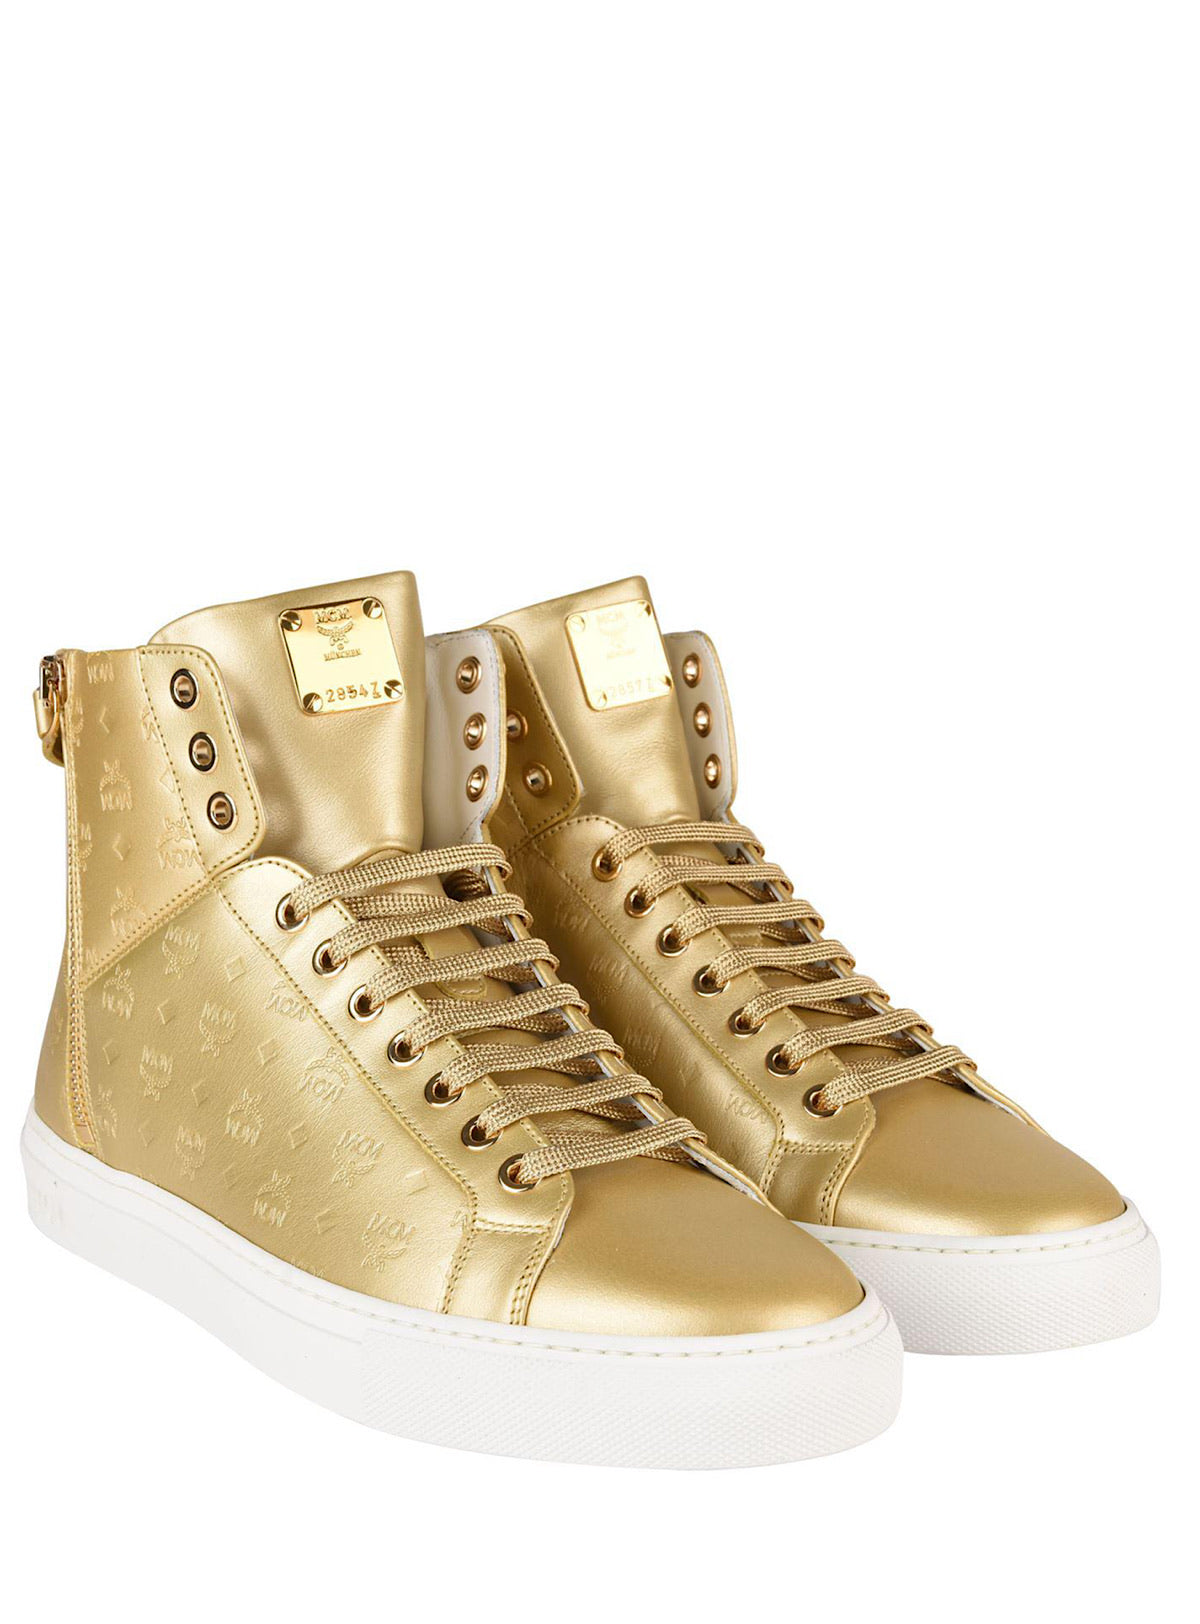 MCM Shoes - Visetos High Top - Gold